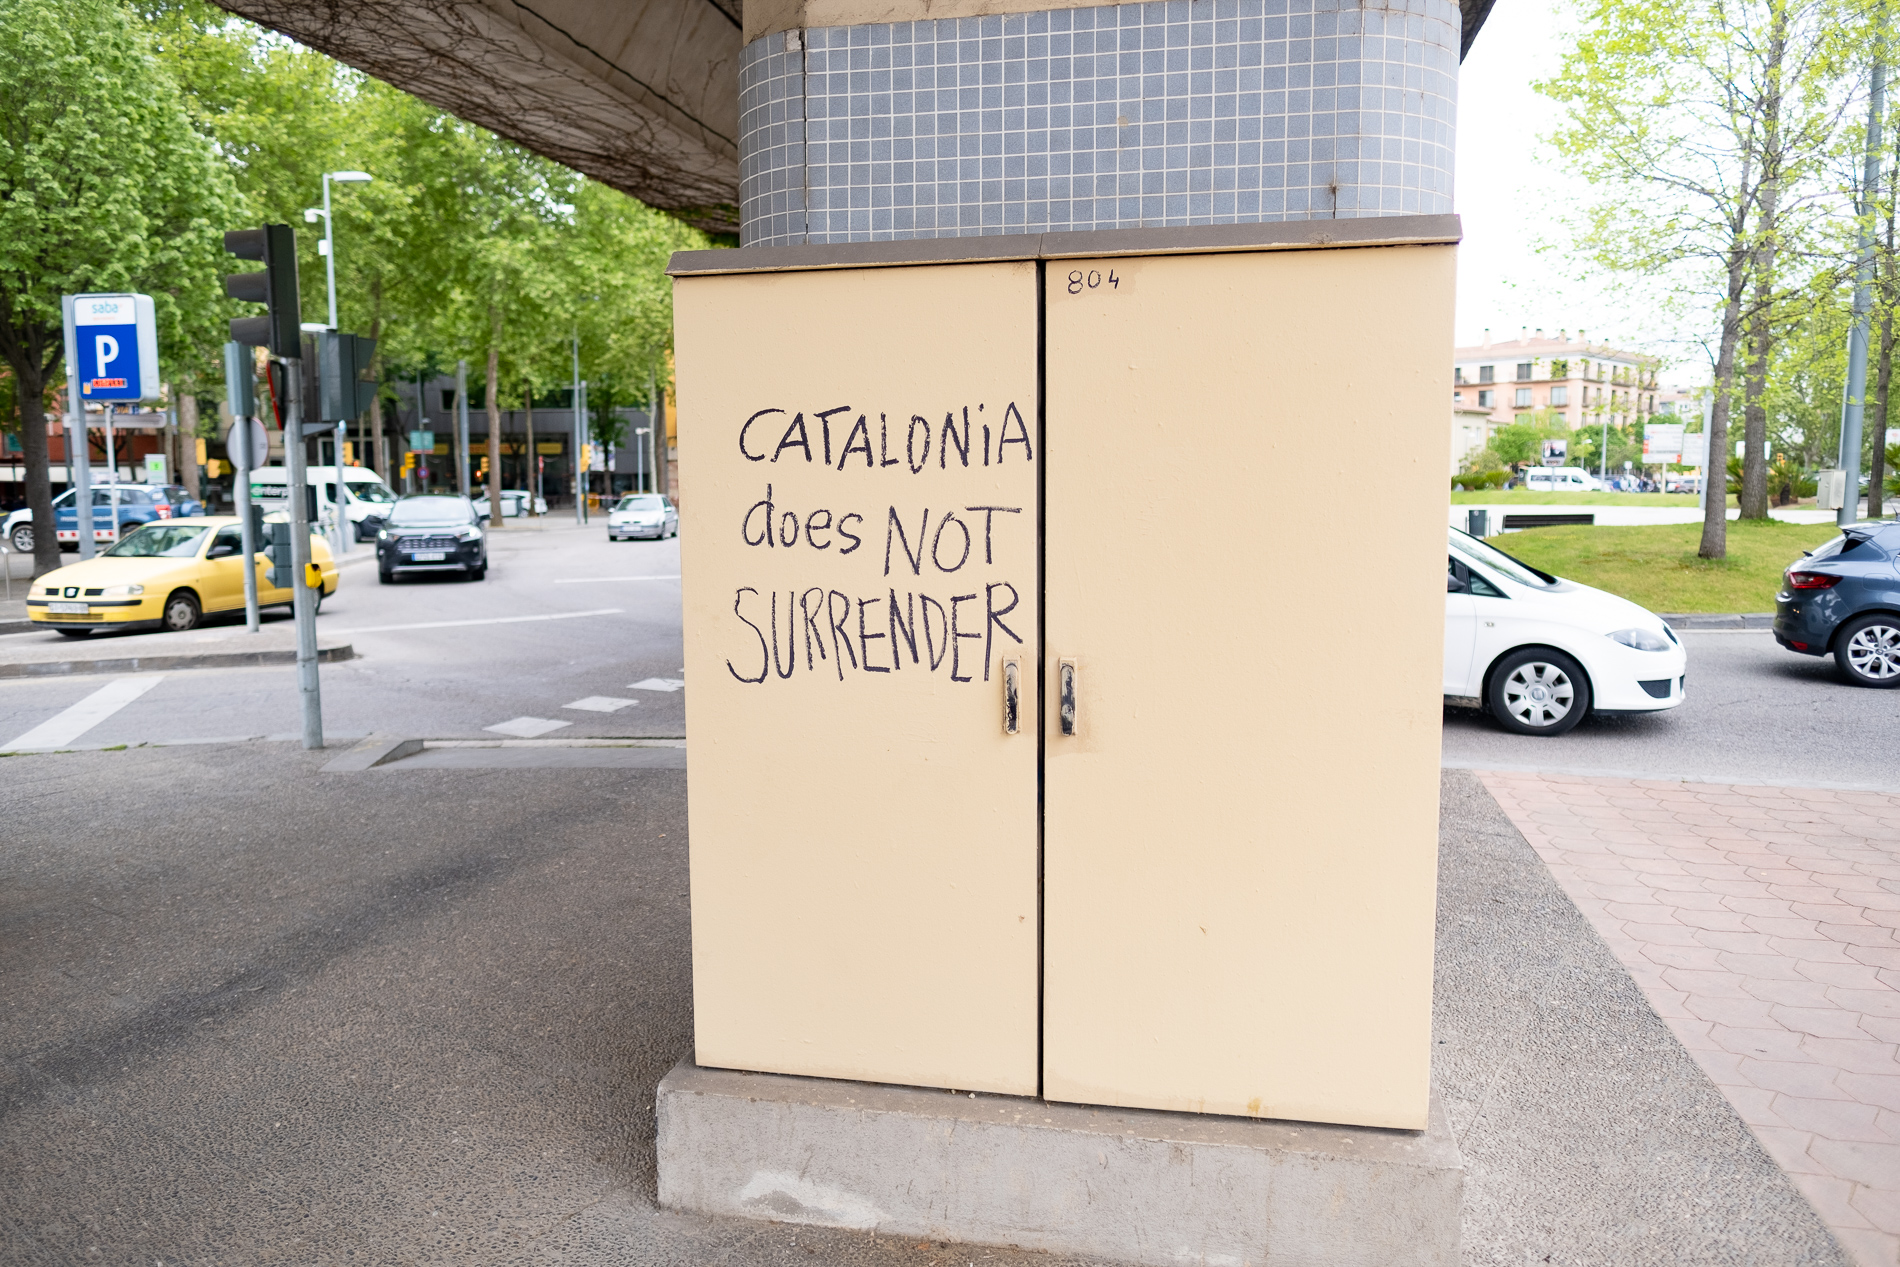 "Graffiti says ""CATALONiA does NOT SURRENDER"" on a power box (maybe?) in the center of Girona Spain's new town."